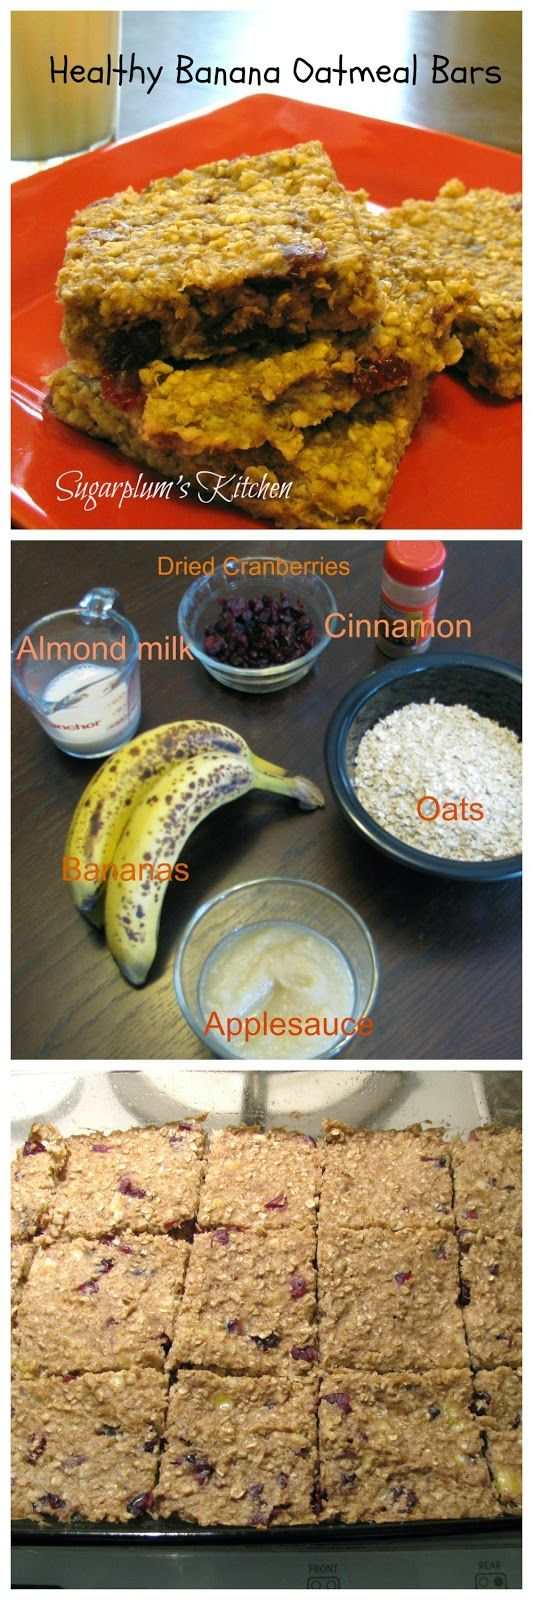 Healthy Banana Oatmeal Bars-A healthier snack with no added sugar!  Sugarplumskitchen.com